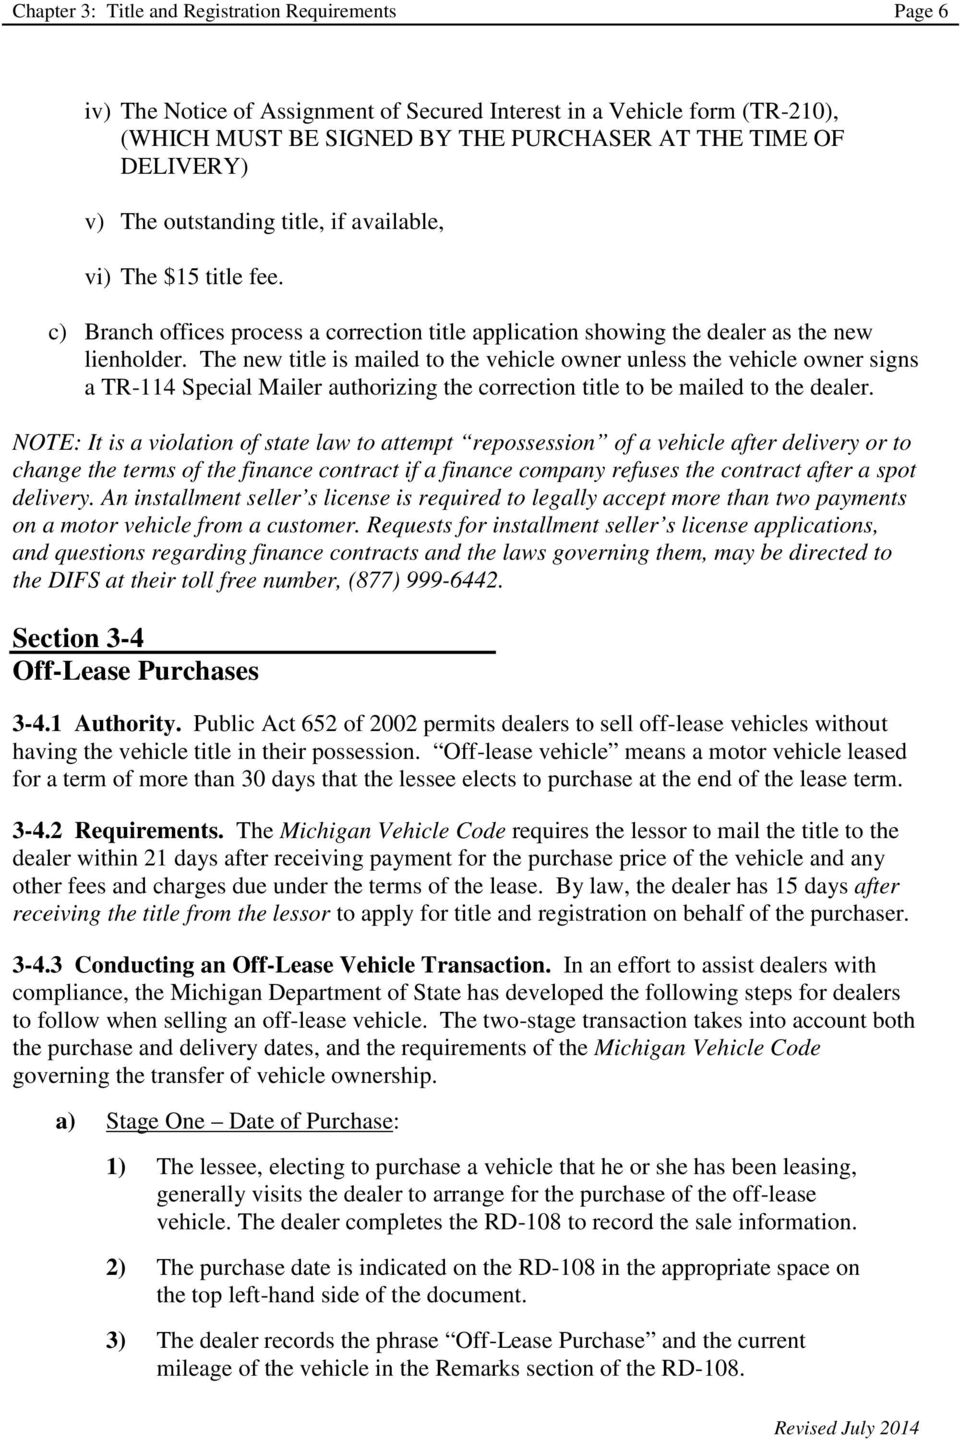 Chapter 3 Title And Registration Requirements Pdf